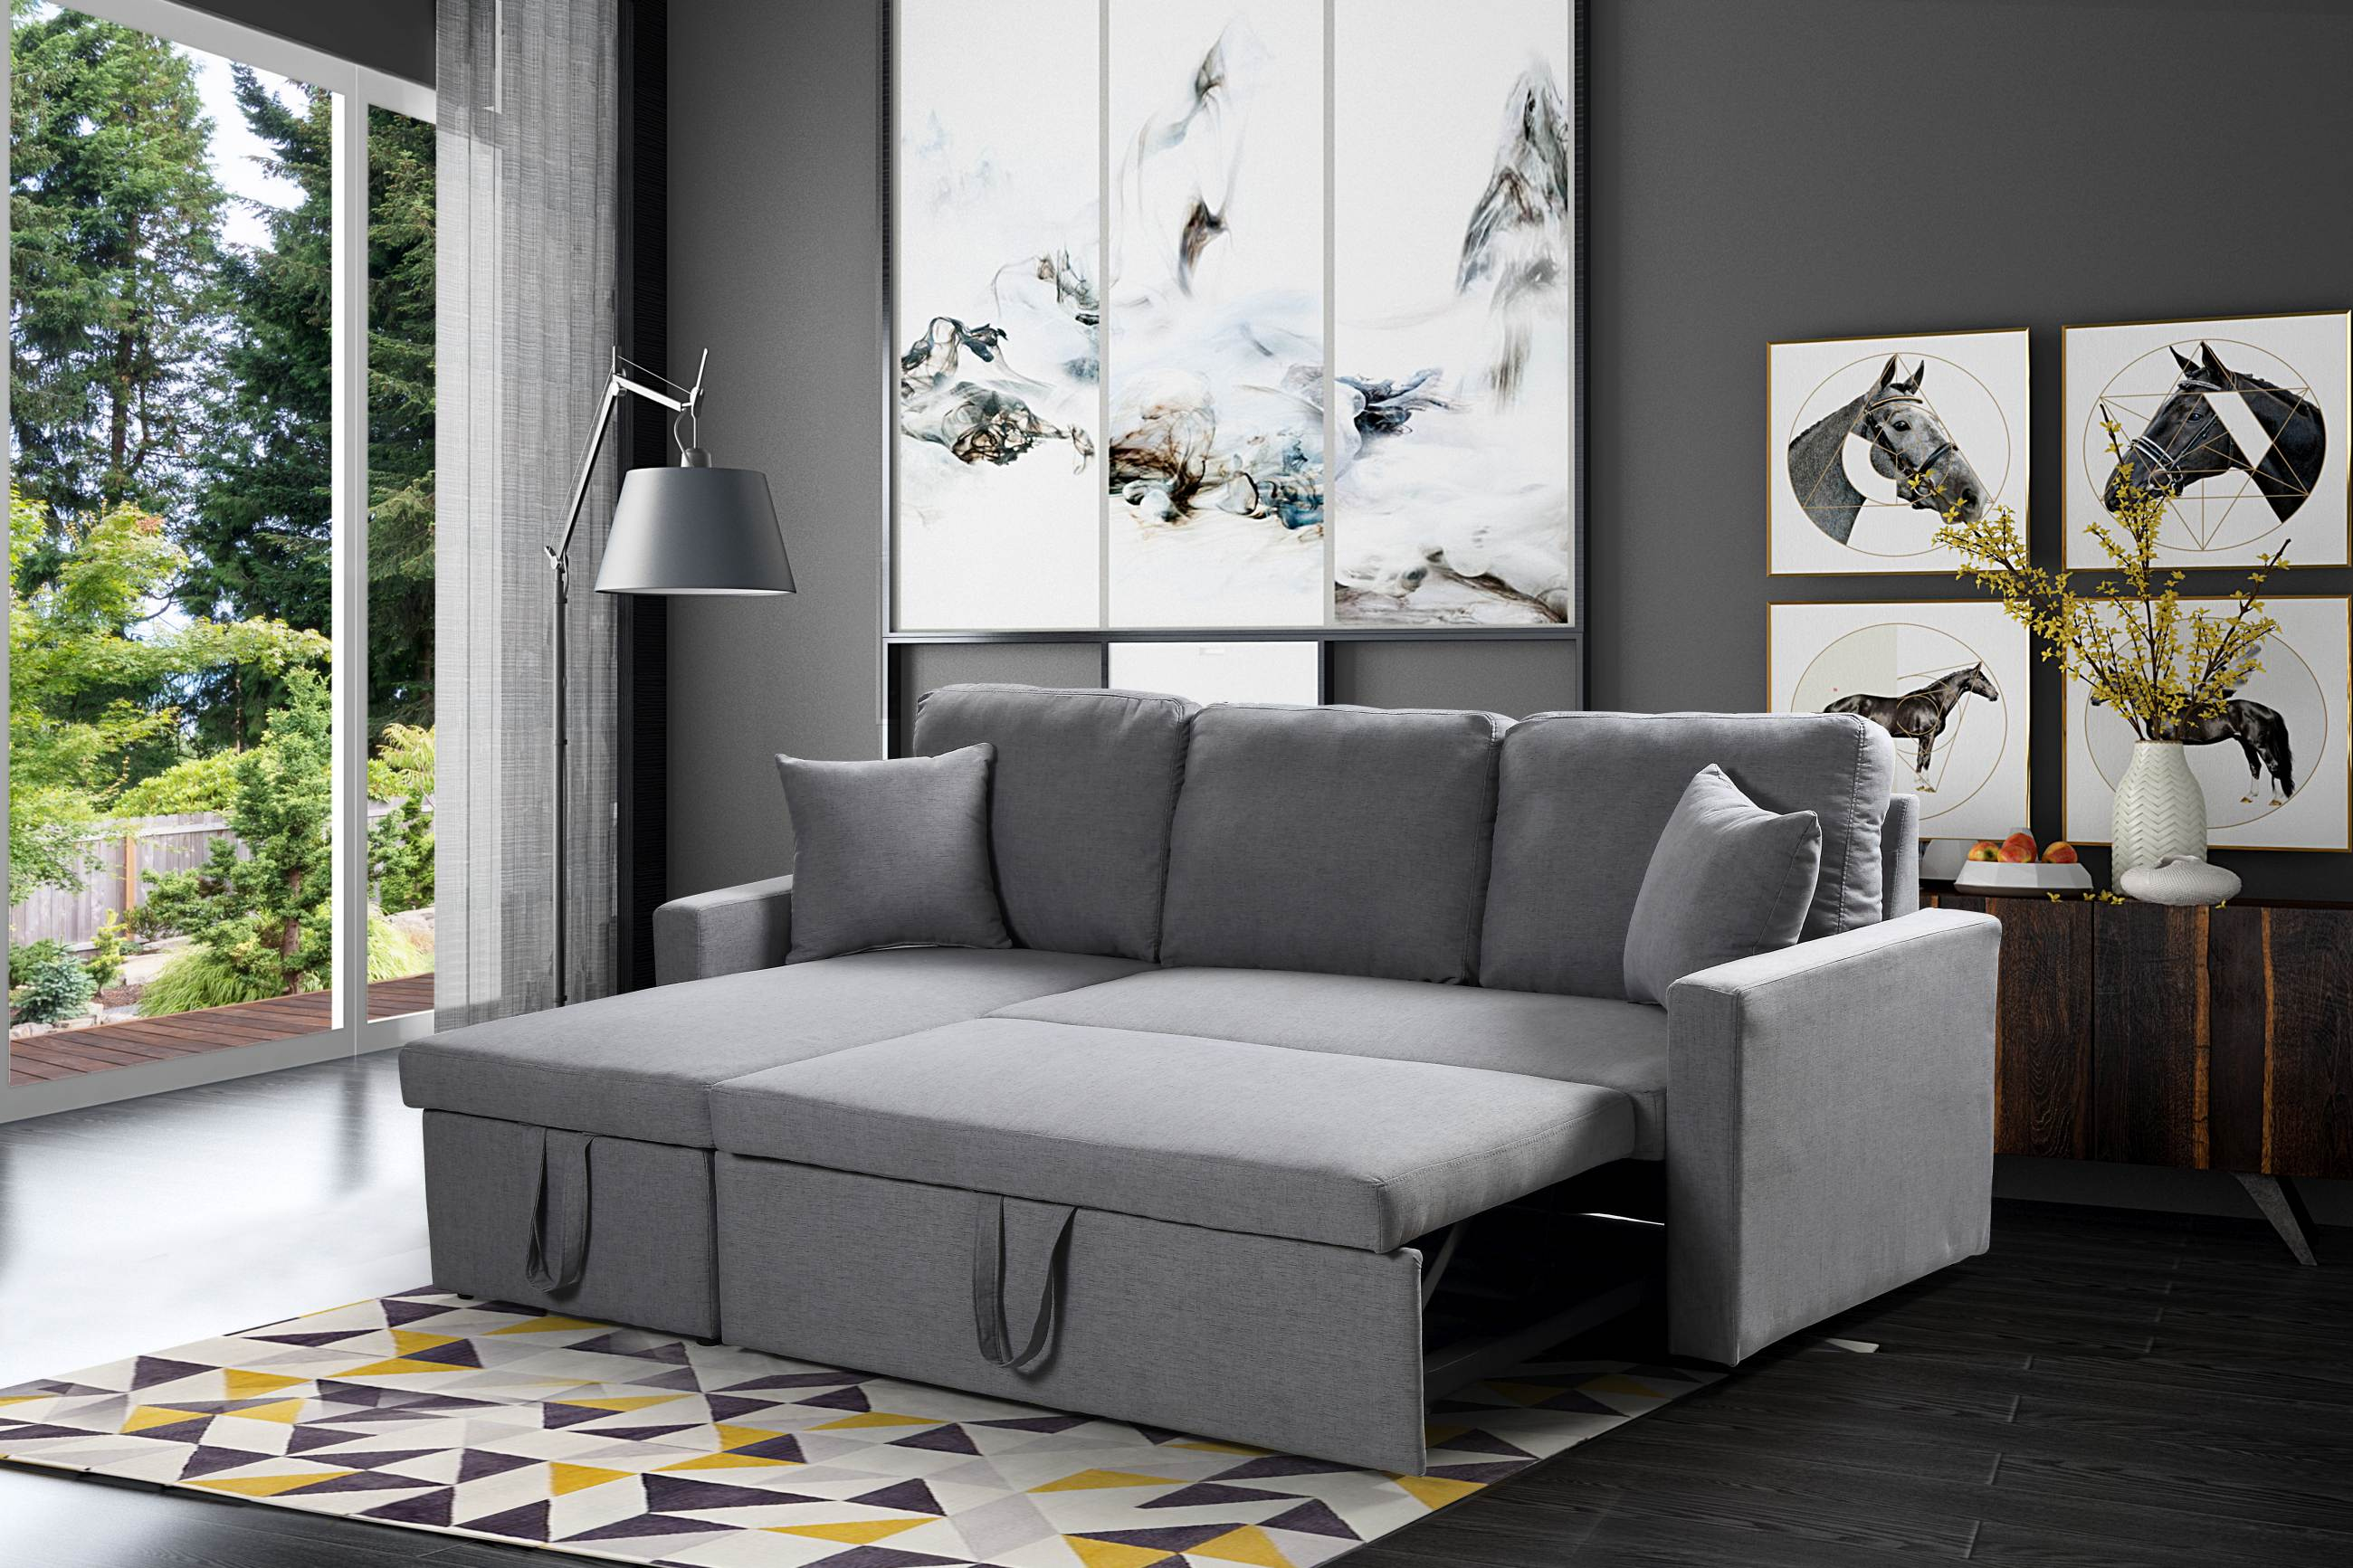 Zara Reversible Sectional Sofa 3 In 1 Bed Storage